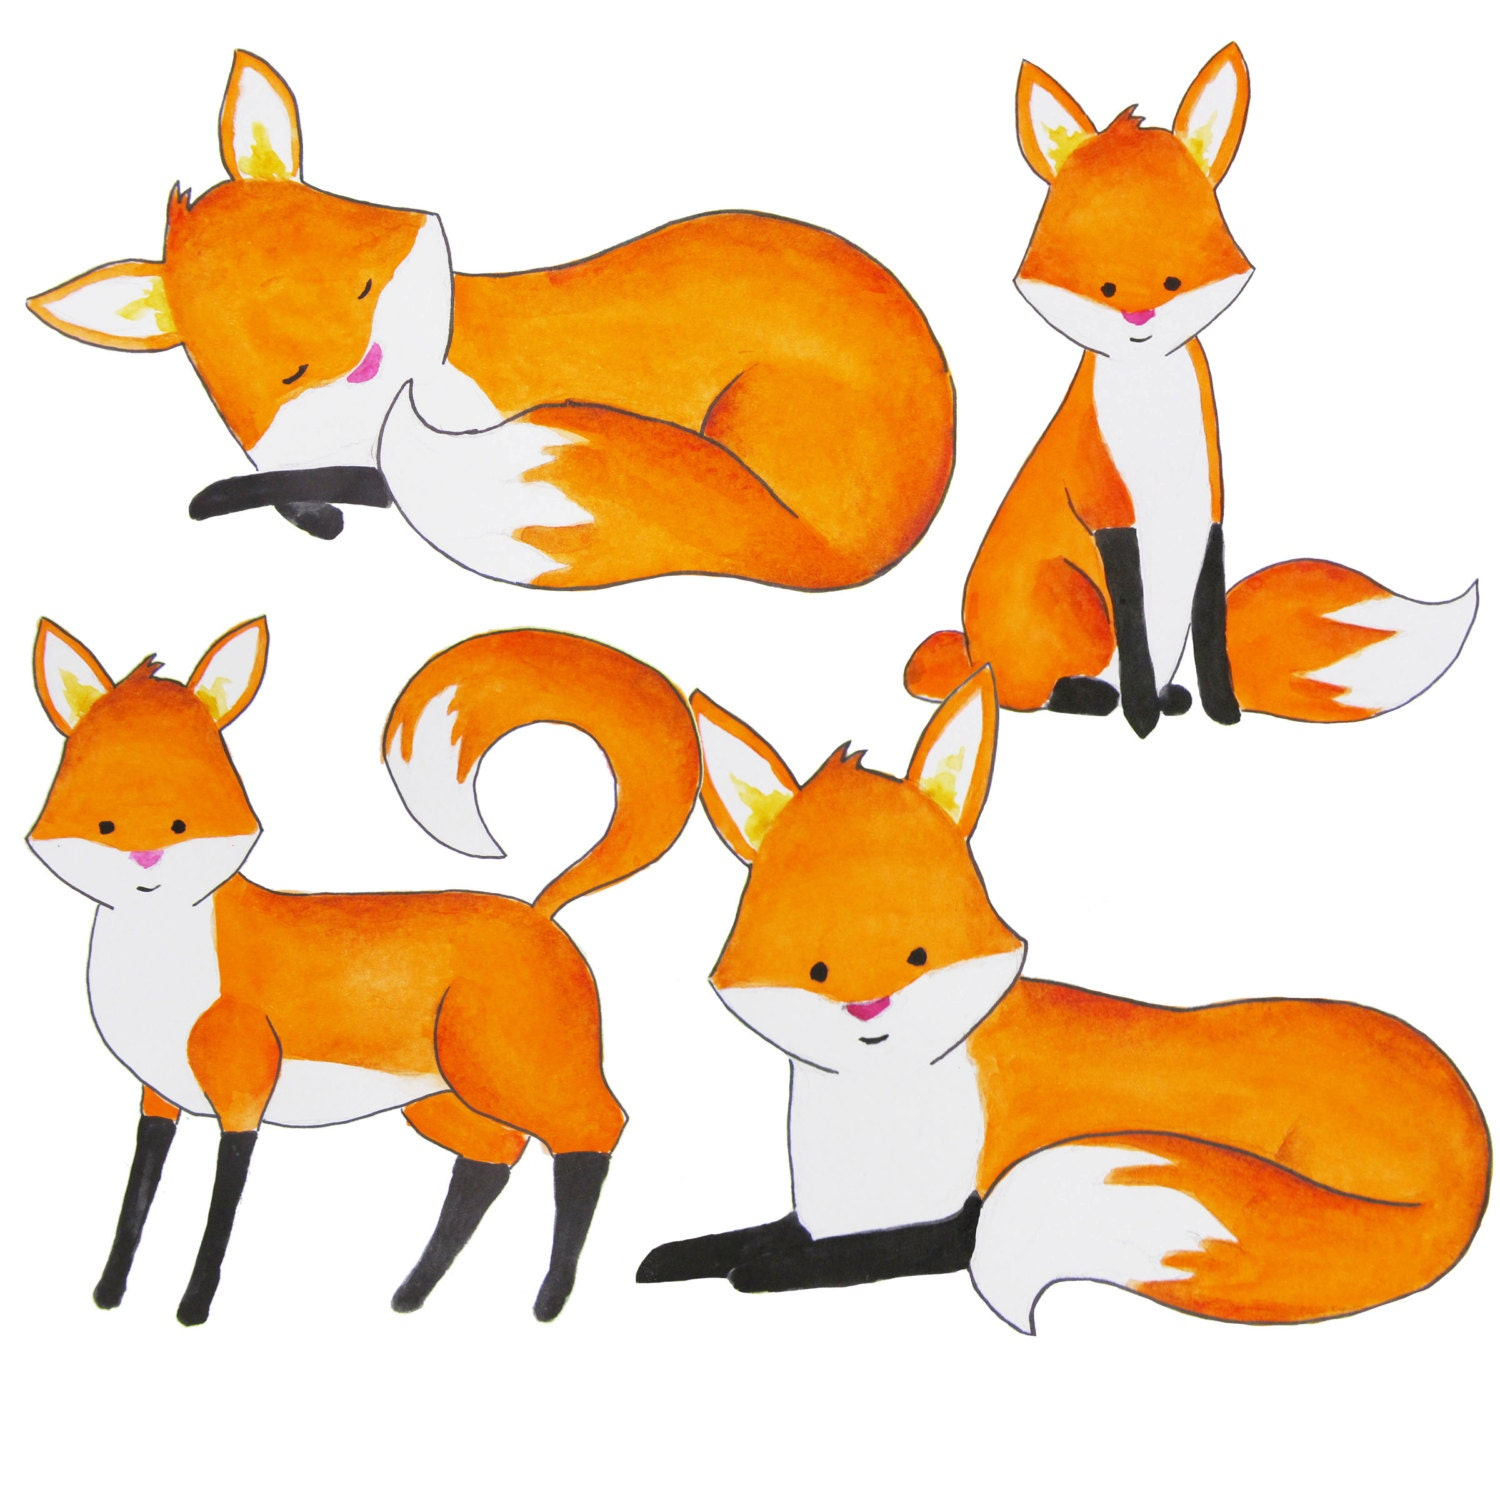 watercolor fox clipart foxes clipart red fox clip art rh etsy com clip art fox hunt clip art fox with football helmet